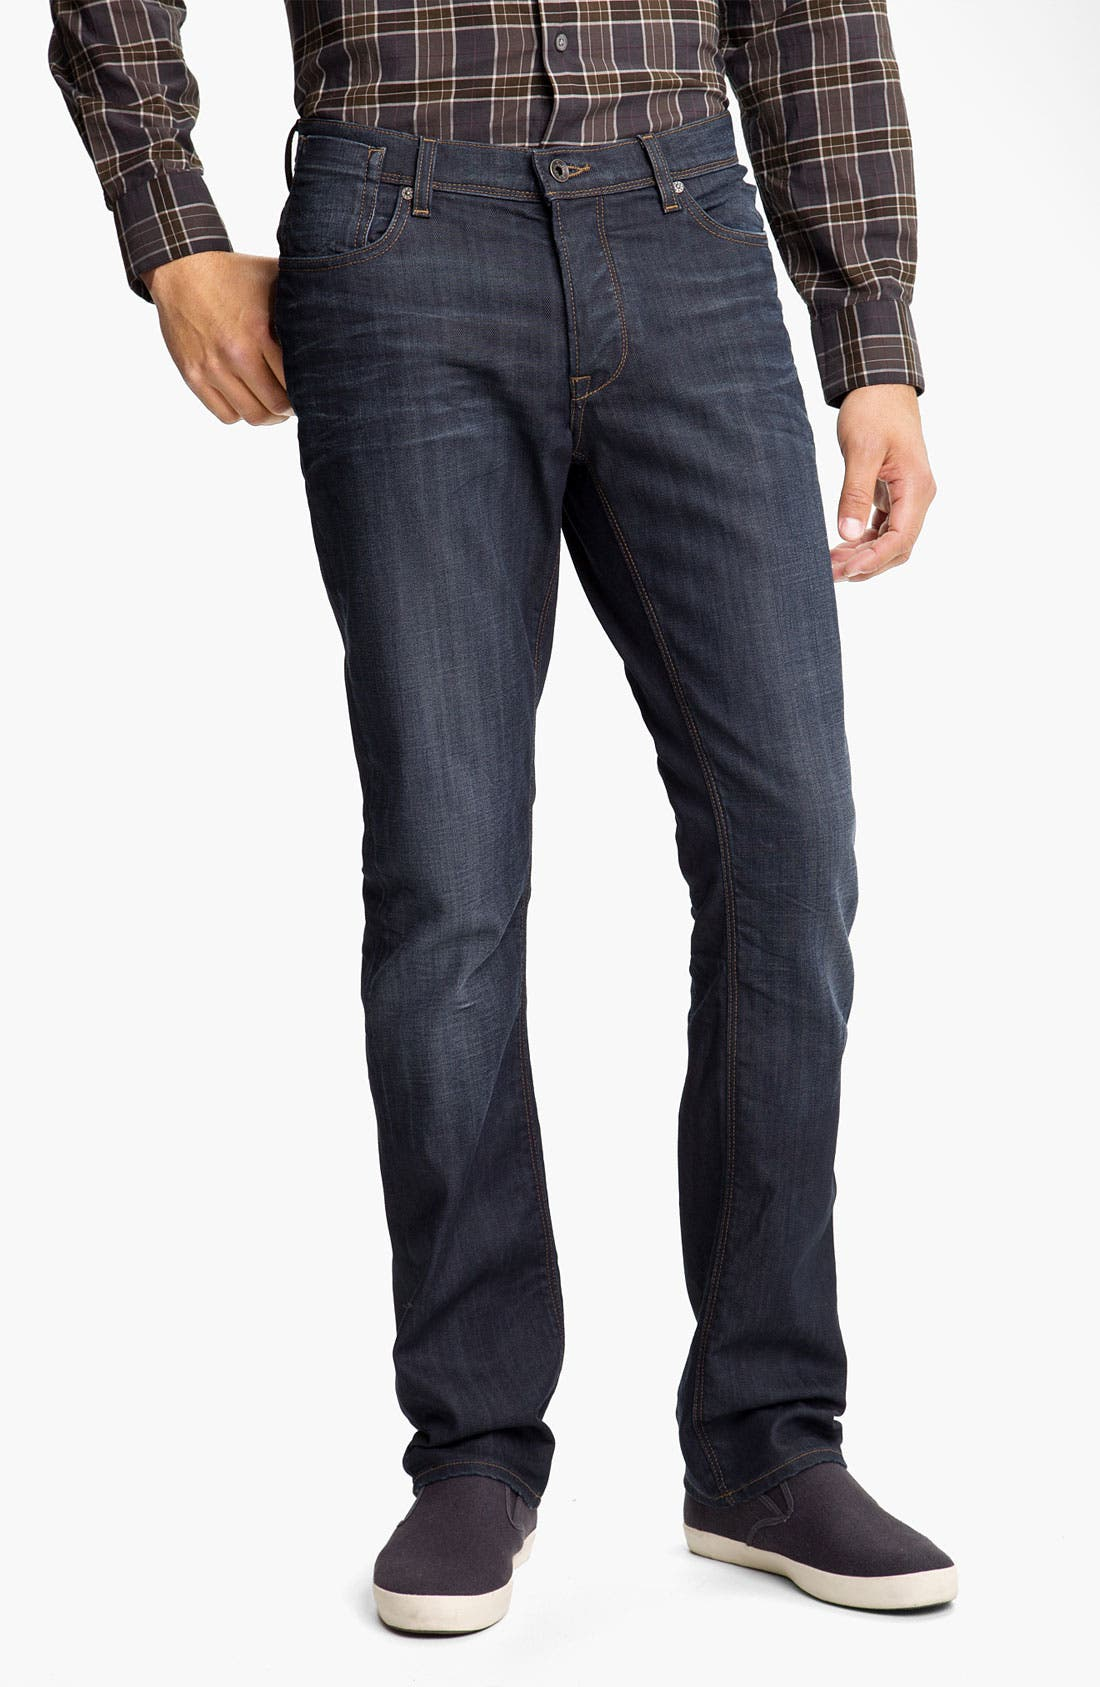 Alternate Image 1 Selected - John Varvatos 'Authentic' Straight Leg Jeans (River Blue)